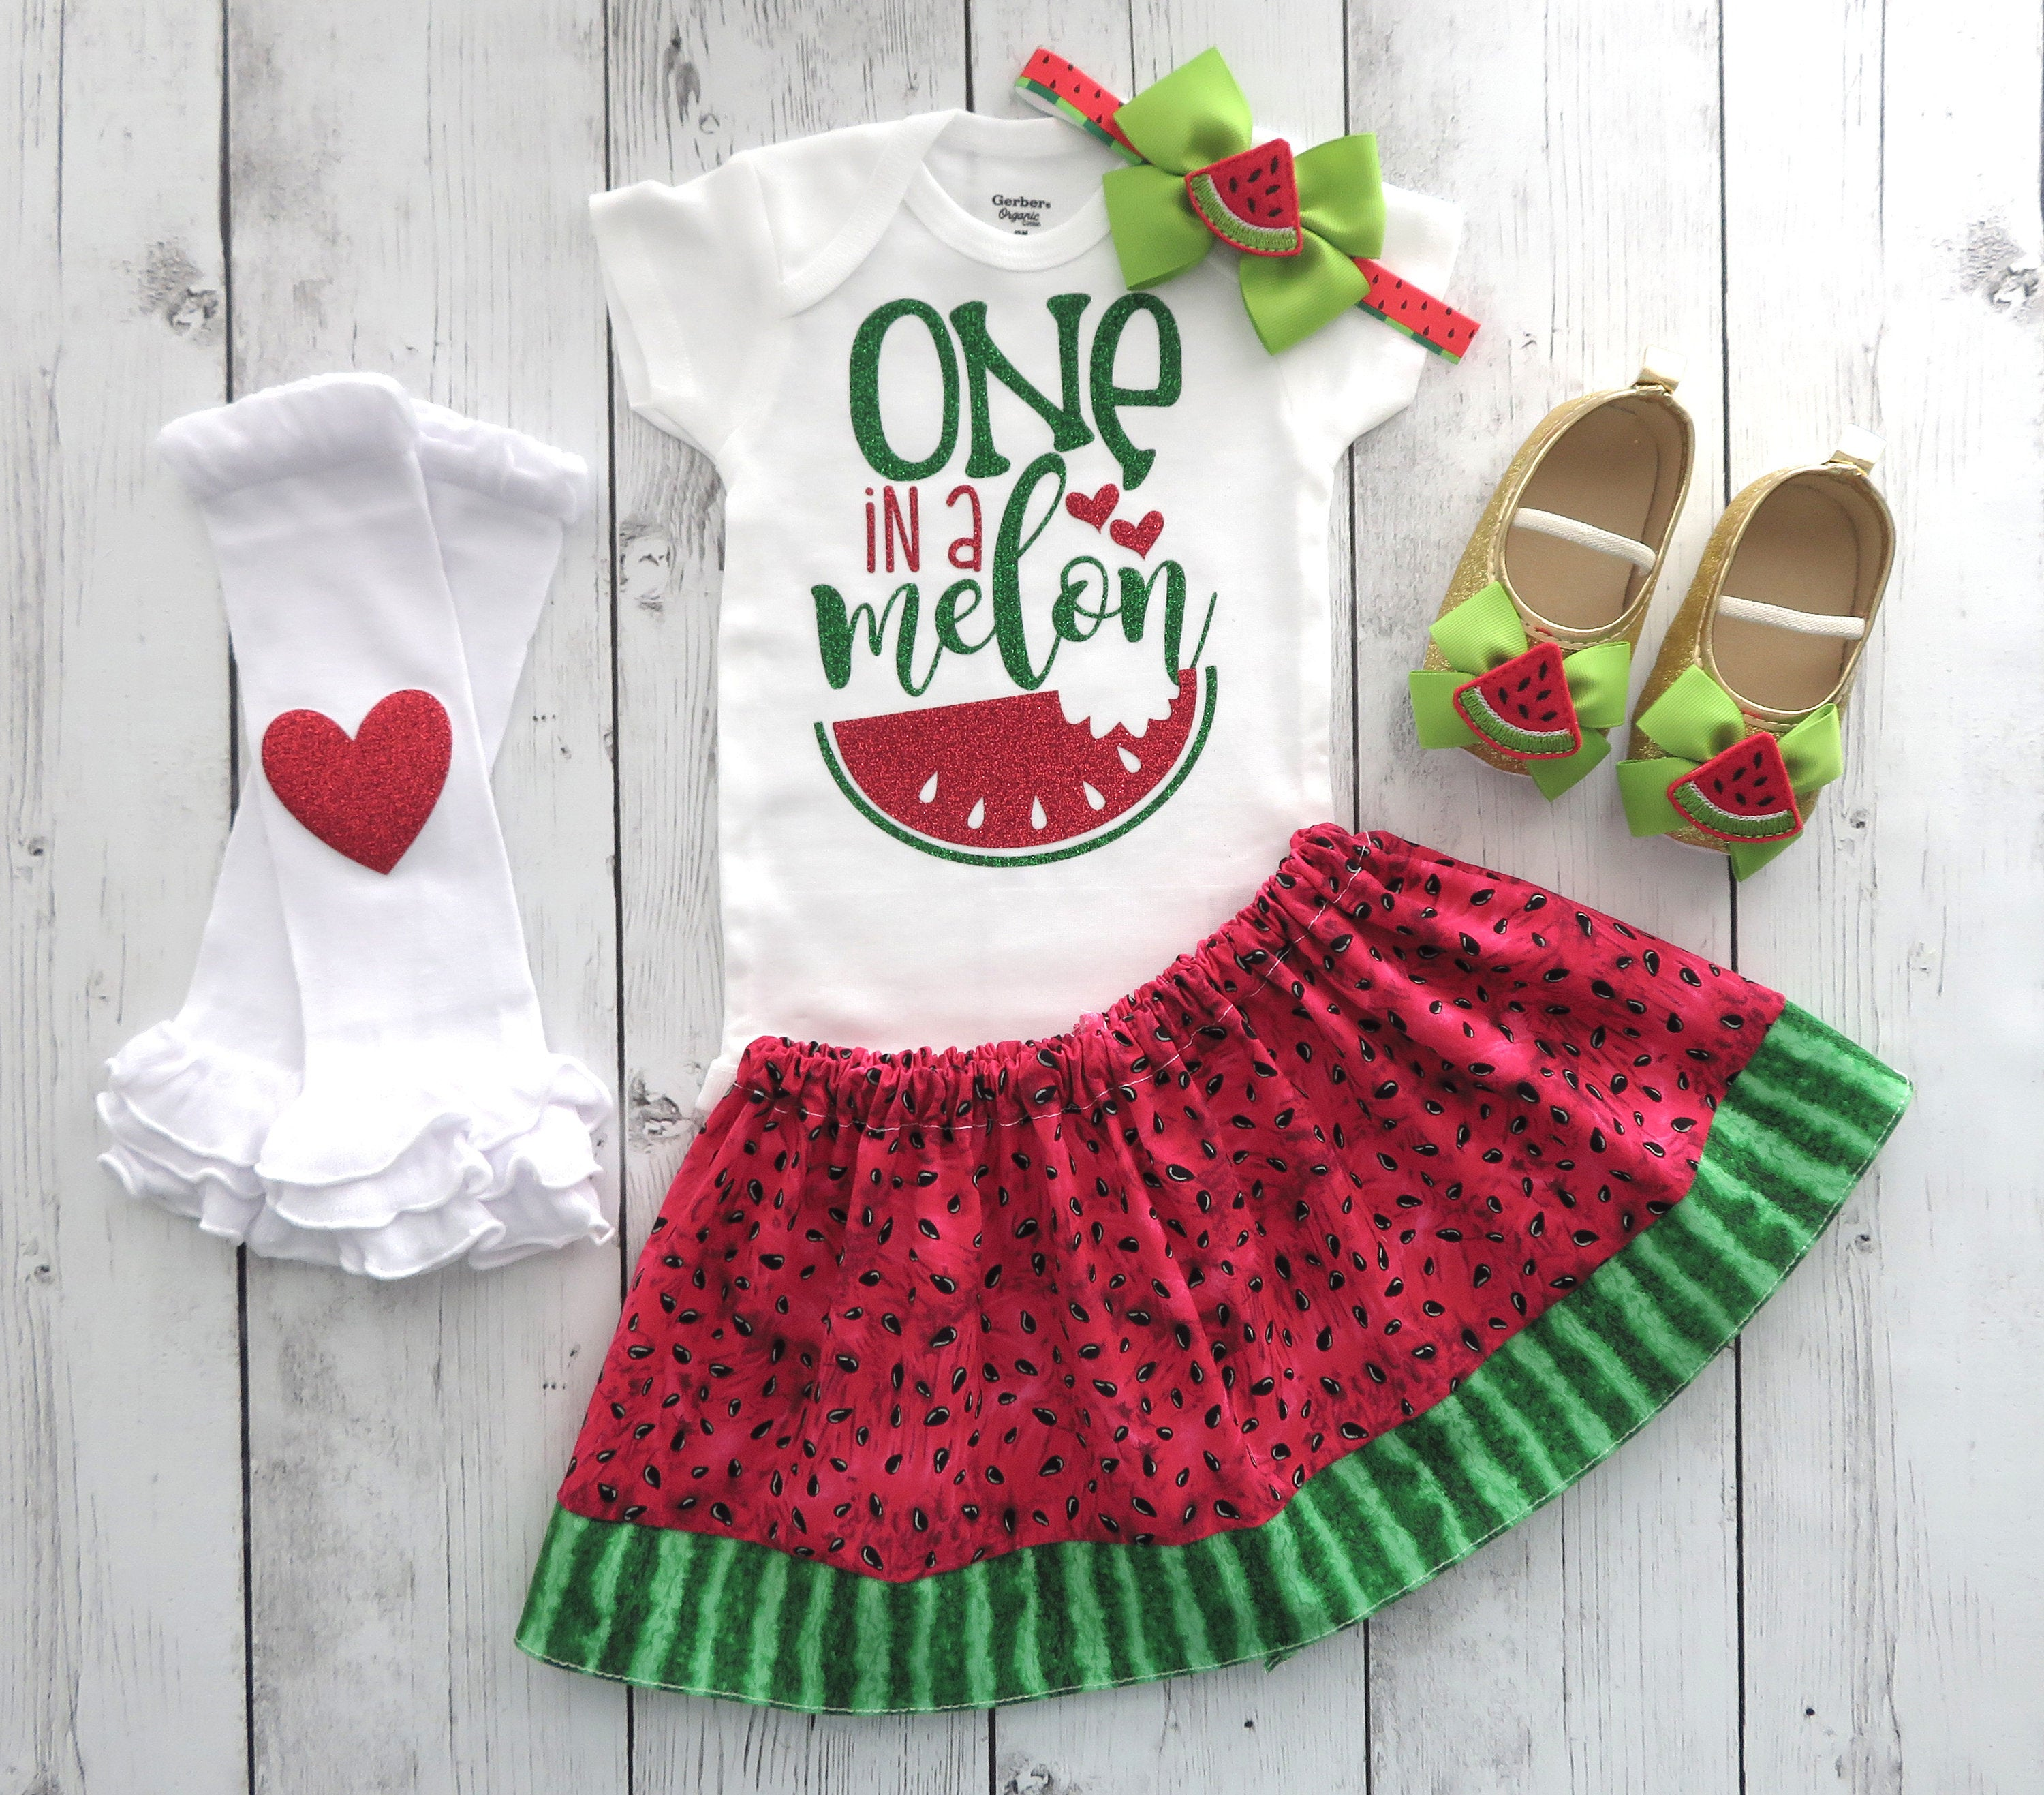 Watermelon First Birthday Outfit in red and green - one in a melon, birthday outfit girl, watermlon first birthday outfit, watermelon shoes